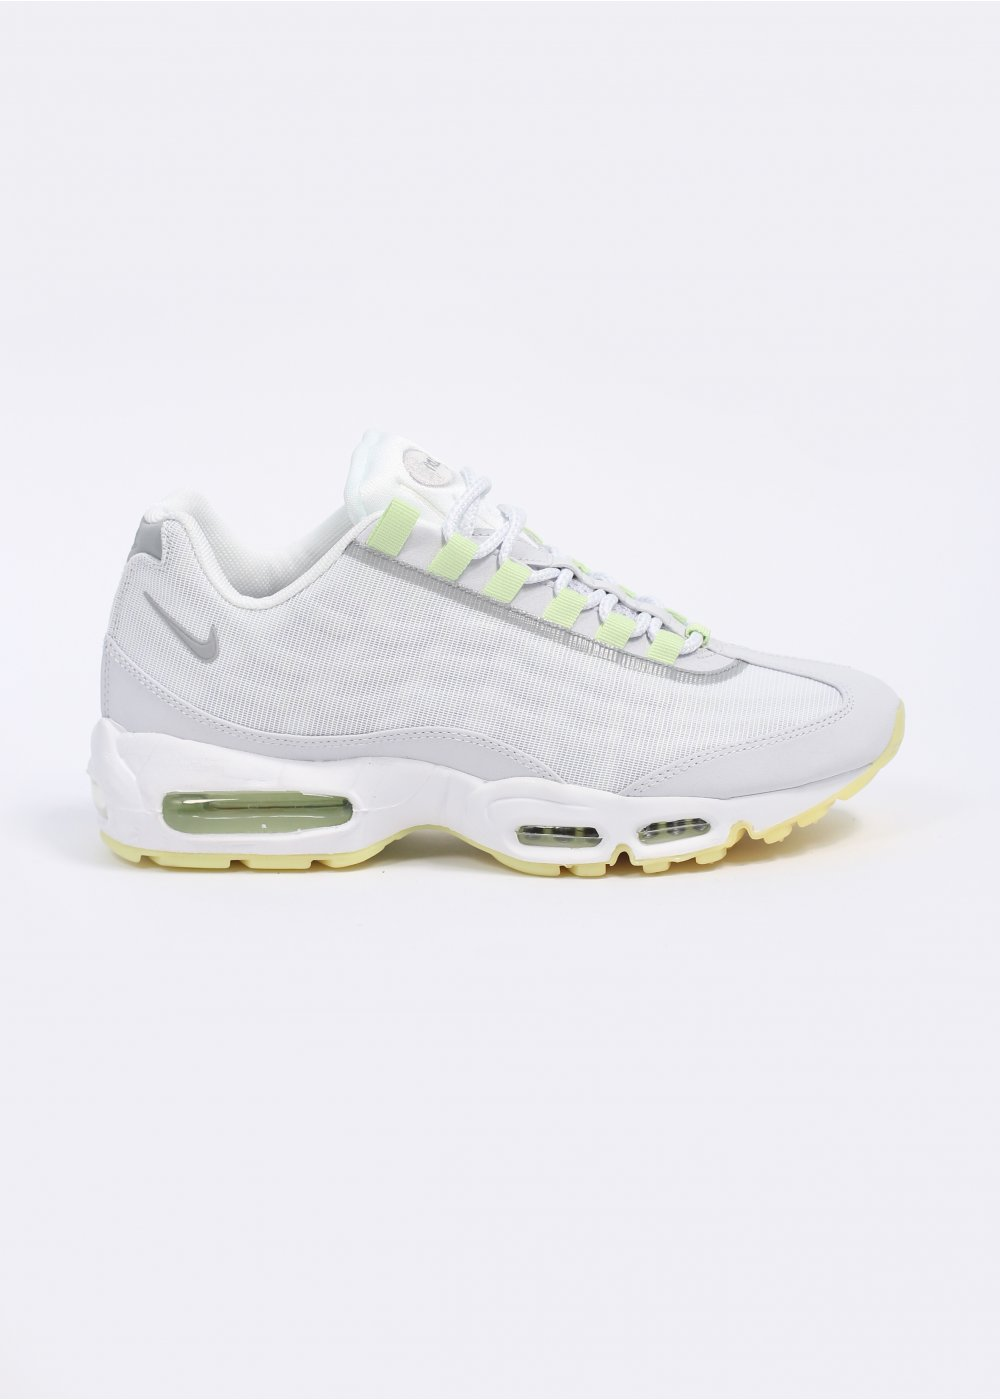 finest selection 99a12 d41a1 Air Max 95 Premium Tape  quot Glow in the Dark quot  Trainers - White